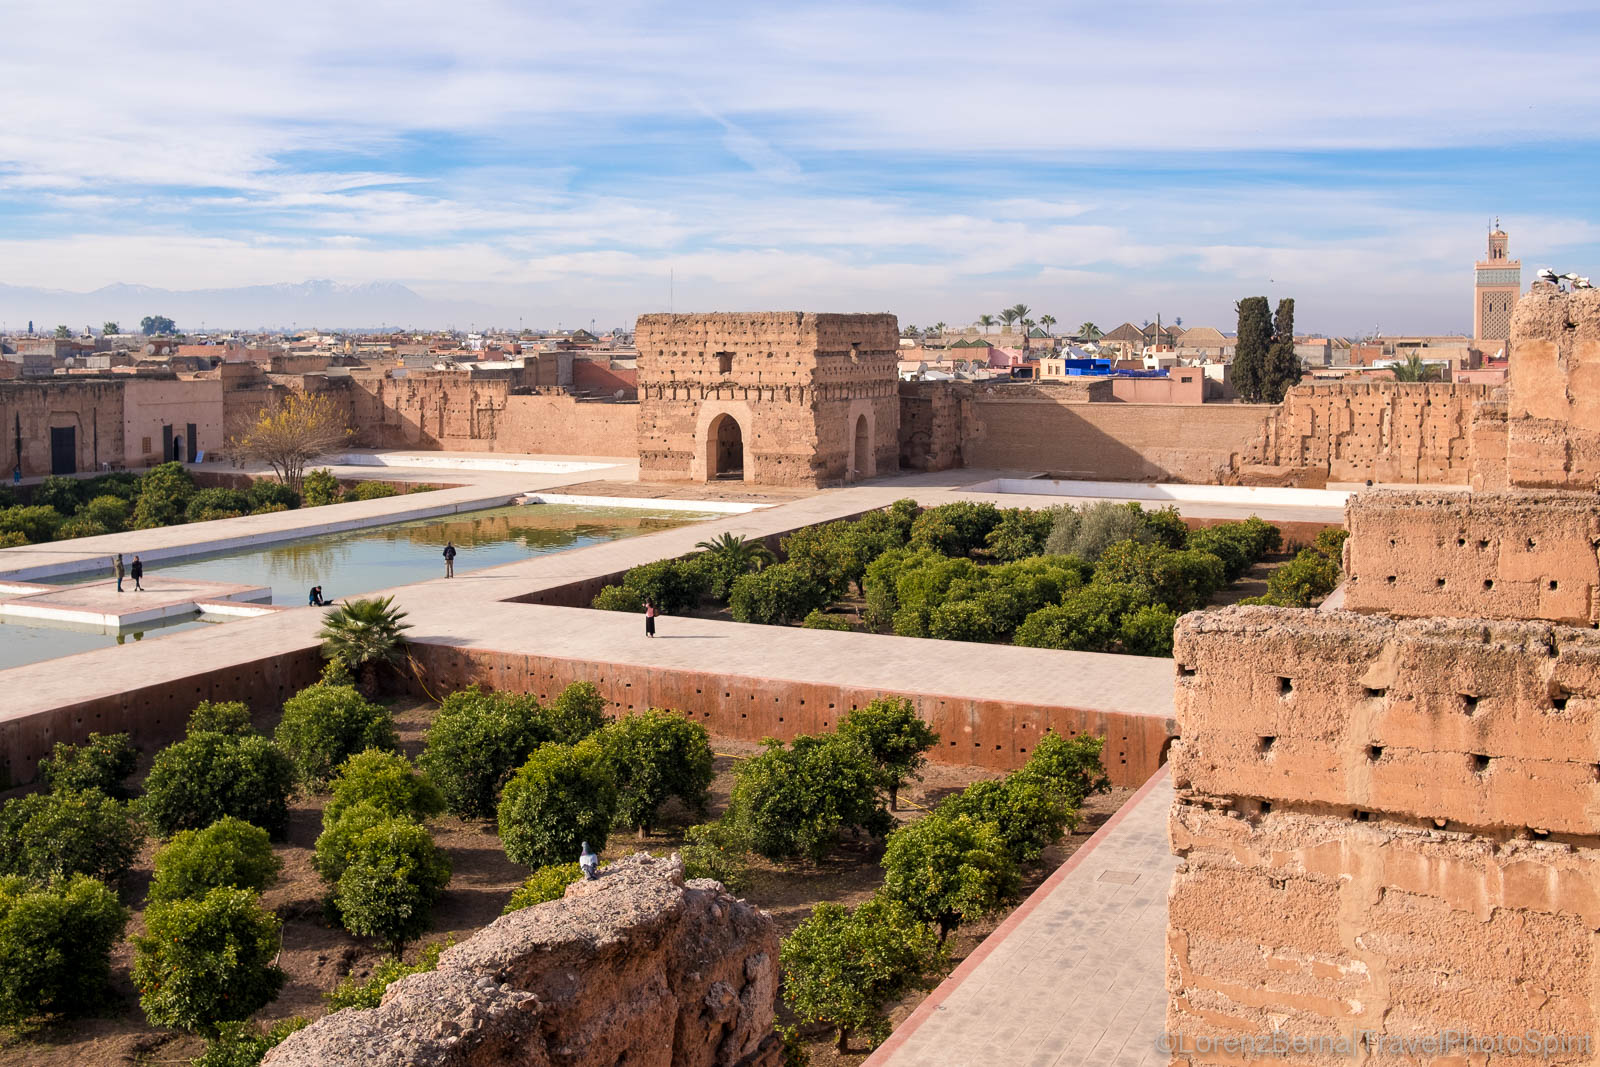 The El Badi palace in Marrakech seen from above